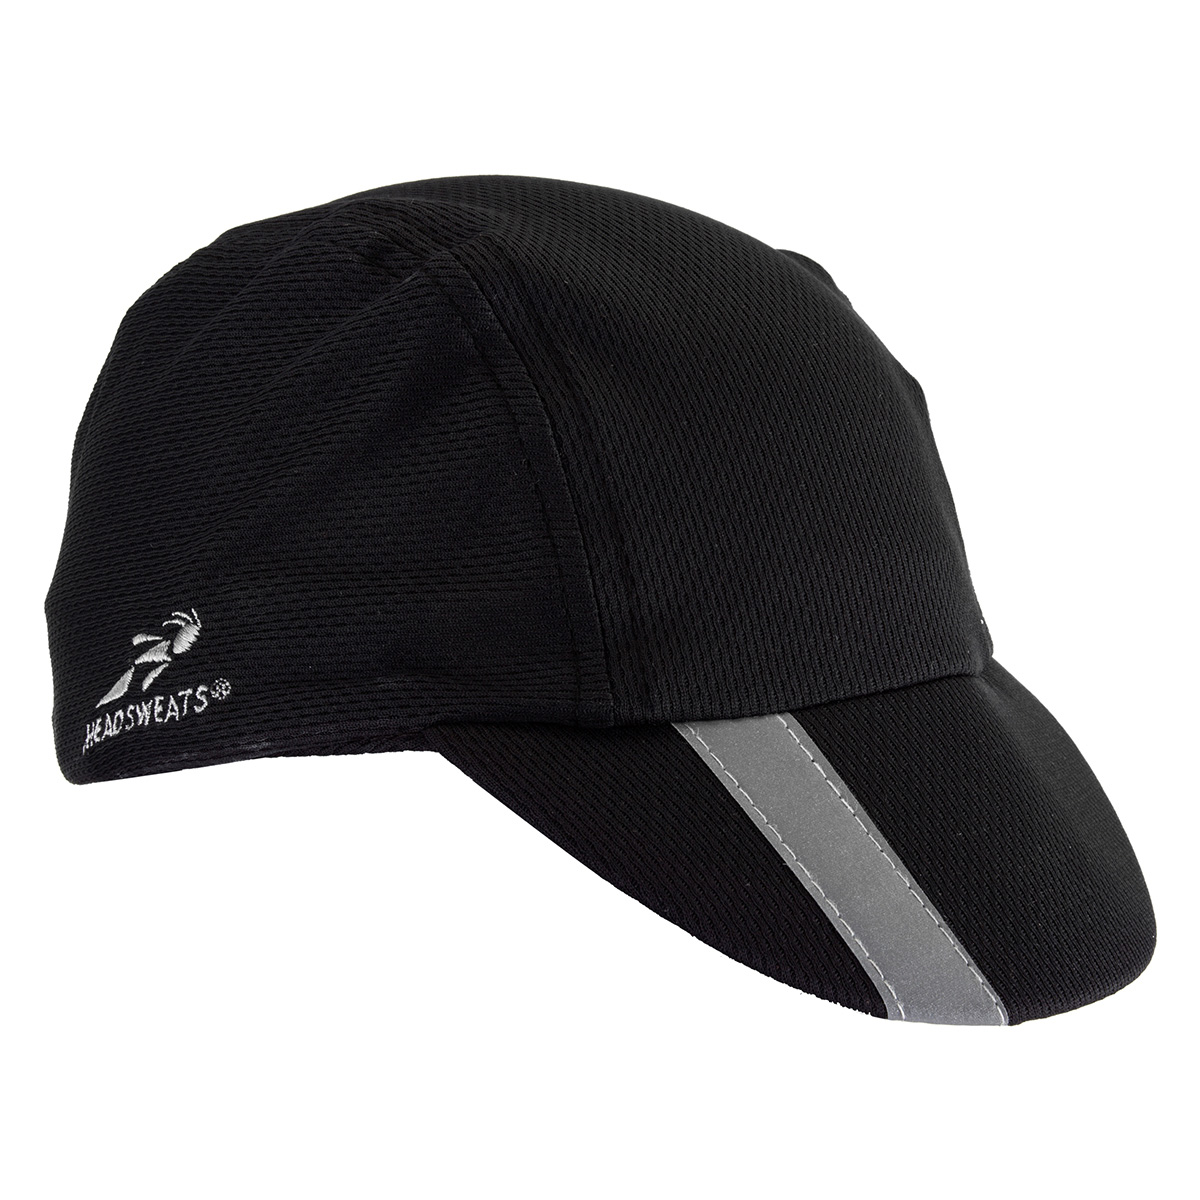 e0469c2ab1e Headsweats Spin Cycle Cycling Cap Black. About this product. Picture 1 of  2  Picture 2 of 2